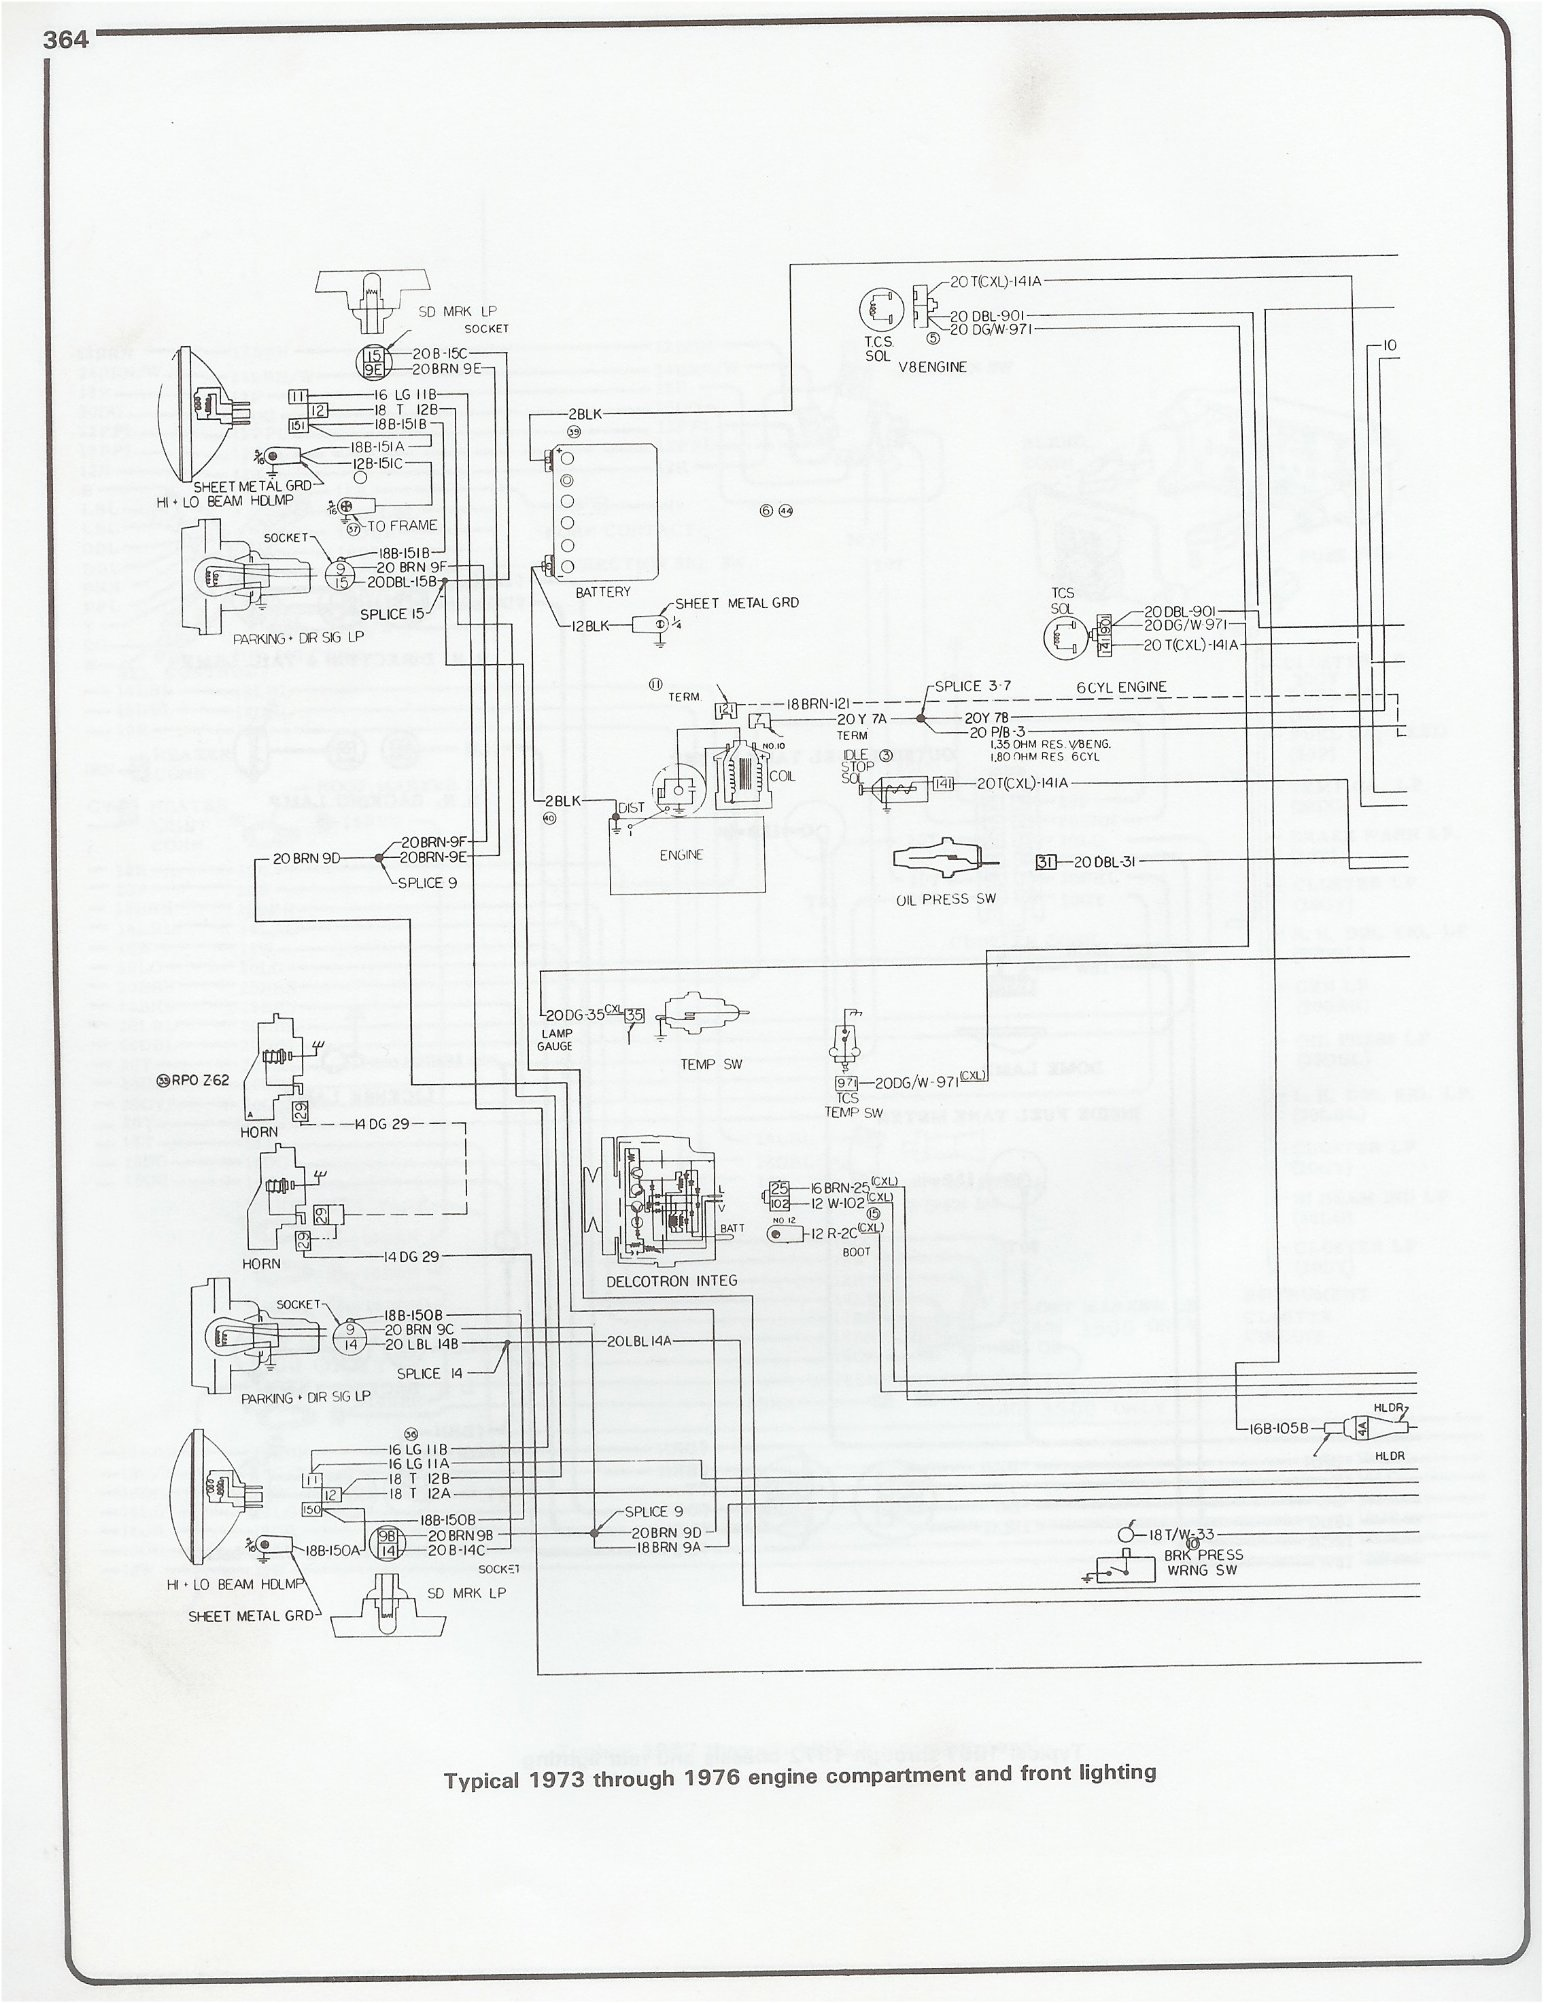 Complete 73 87 Wiring Diagrams Motor Starter Diagram Wiper Gm Ignition 76 Engine And Front Lighting